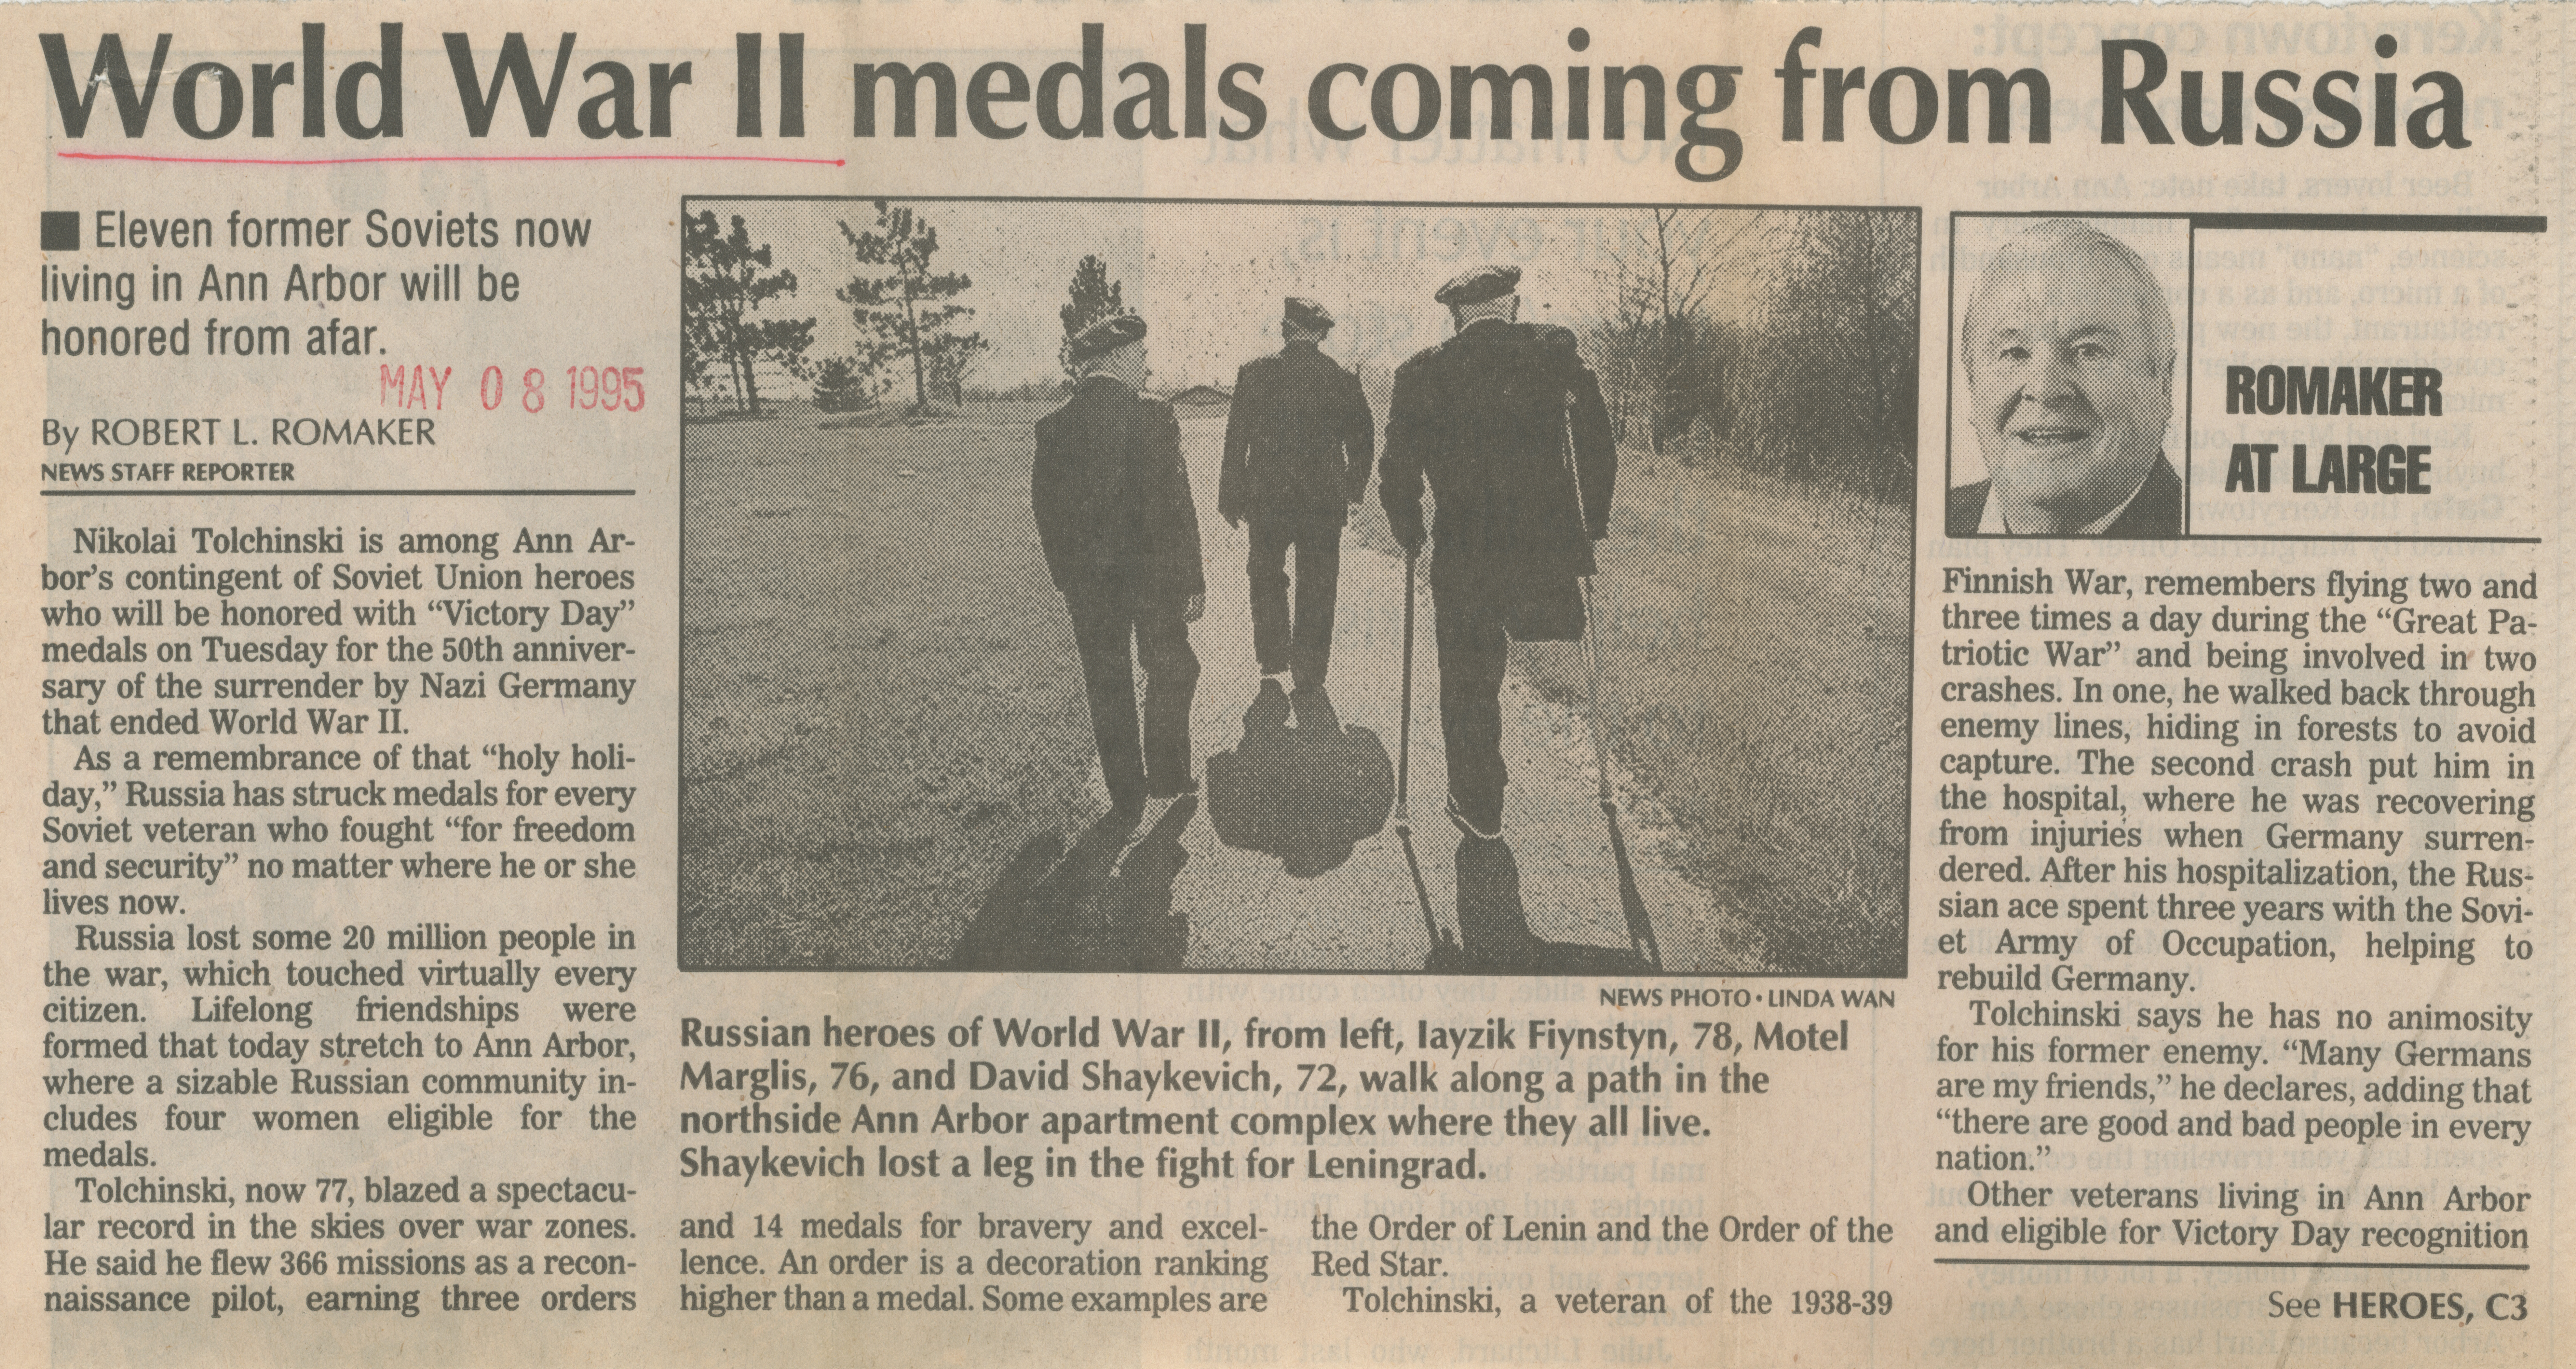 World War II medals coming from Russia image